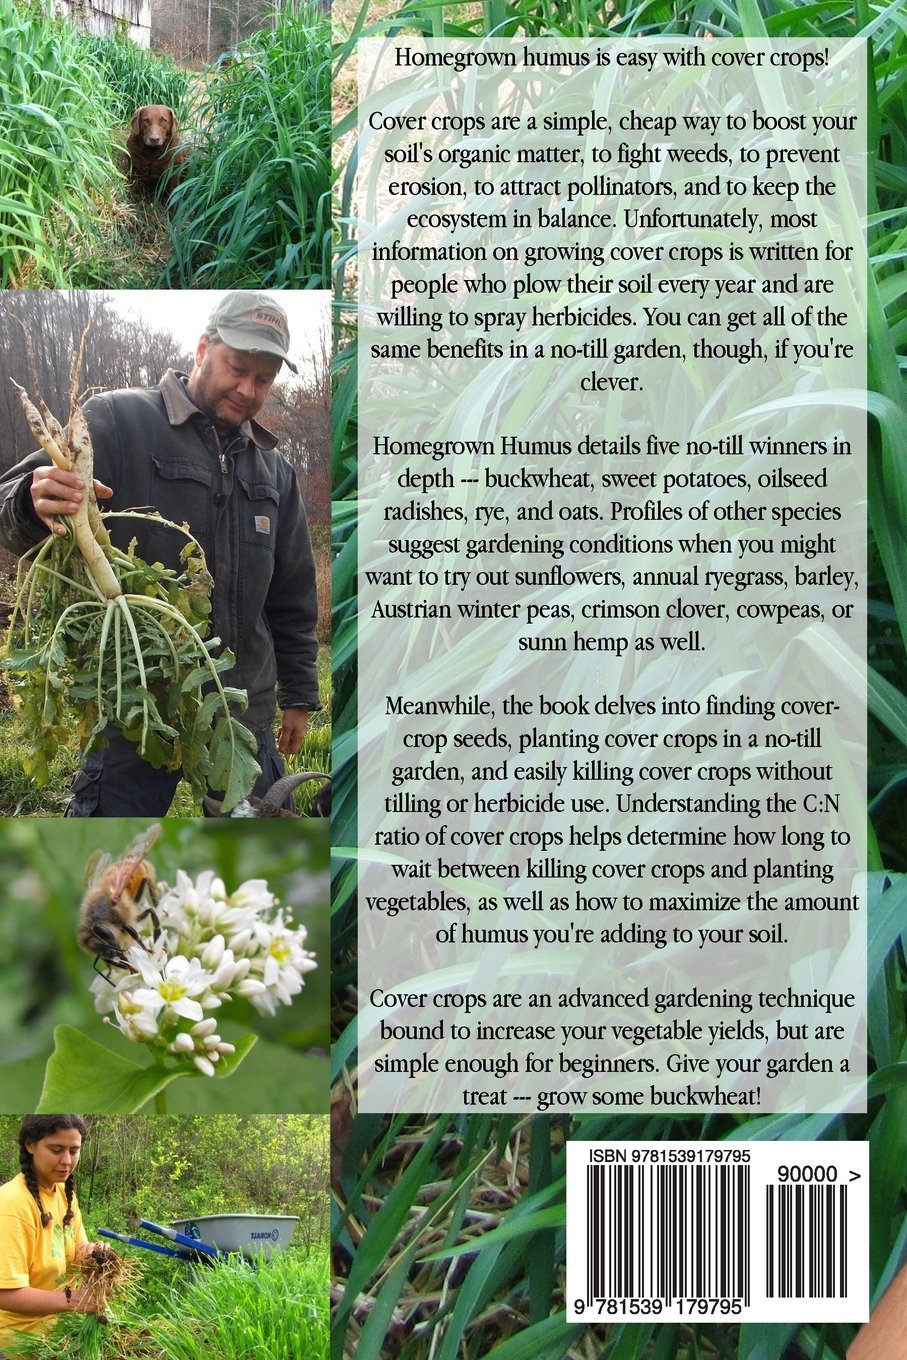 homegrown humus cover crops in a no till garden permaculture